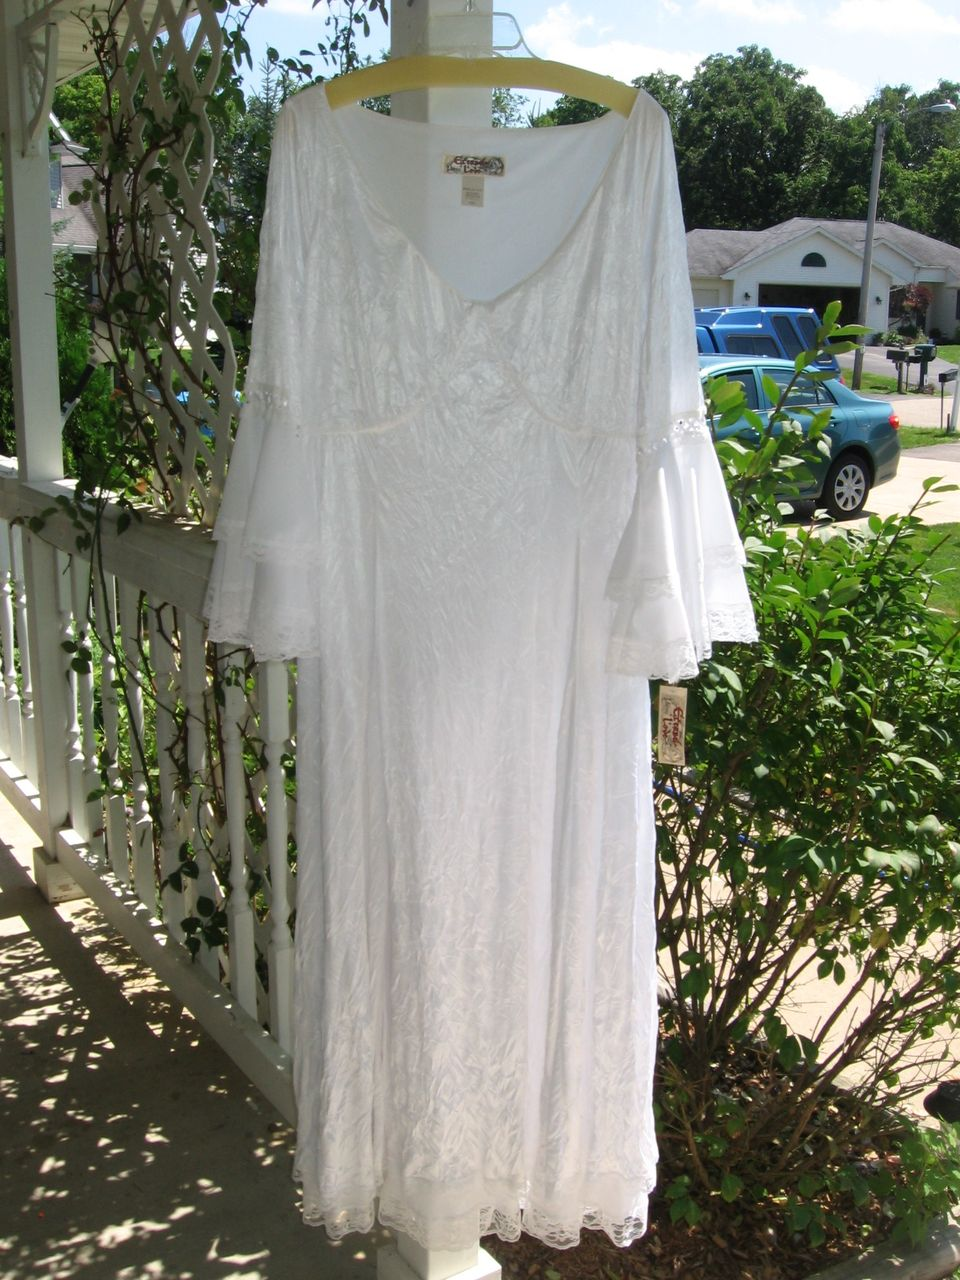 Cheap wiccan wedding dresses wedding short dresses cheap wiccan wedding dresses 26 junglespirit Image collections